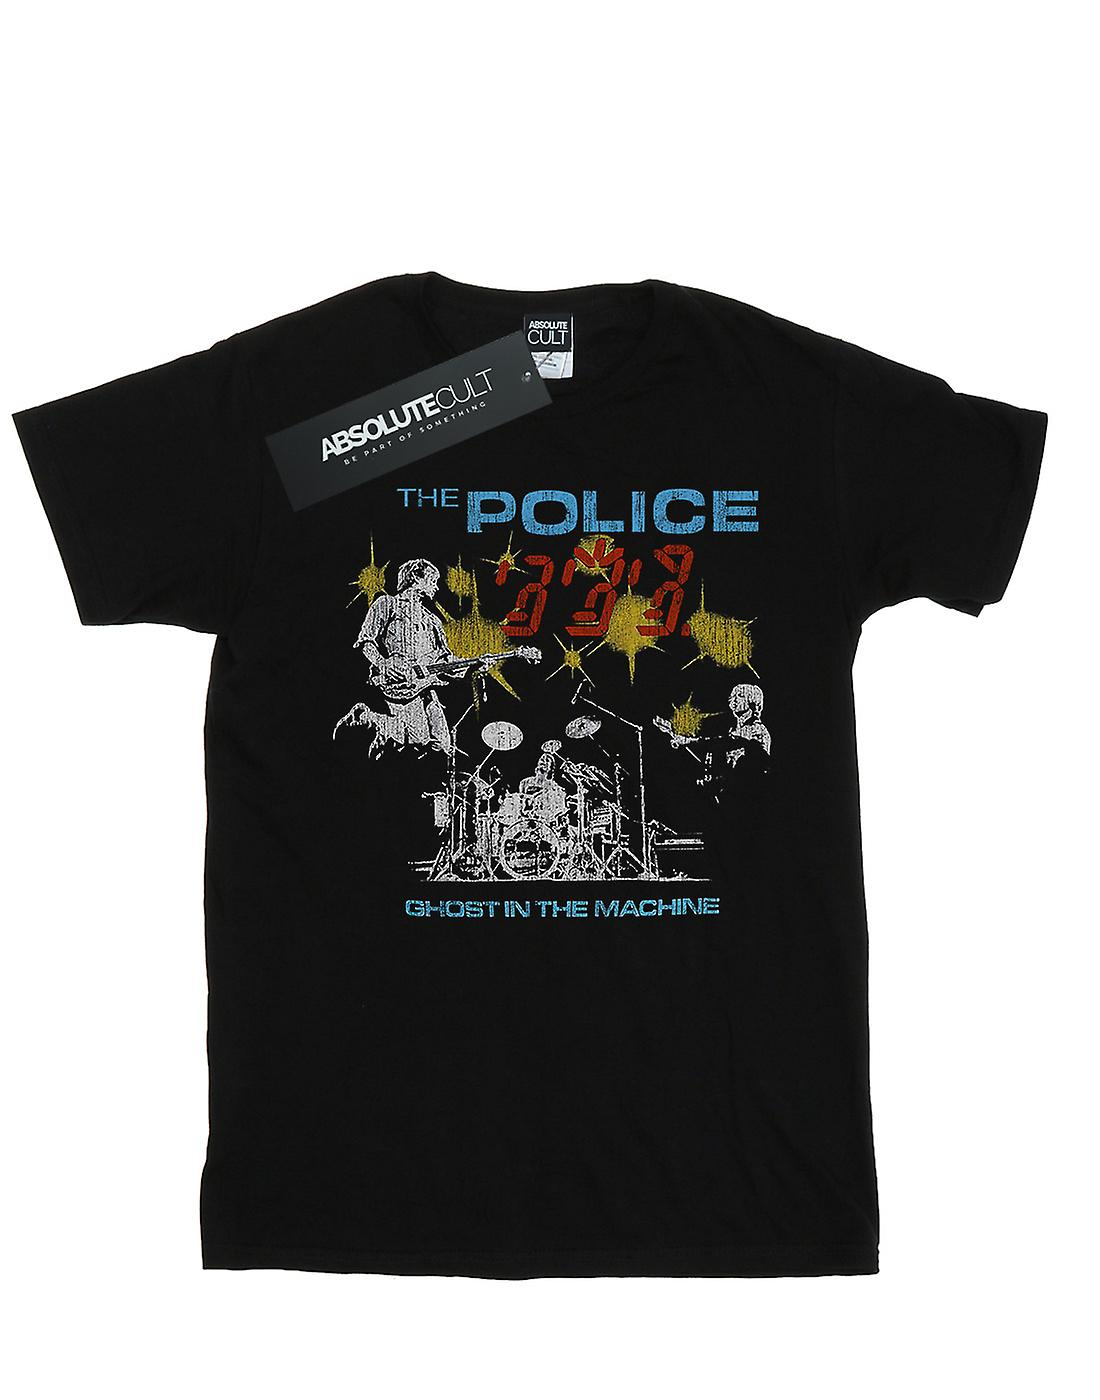 The Police Girls Ghost In The Machine T-Shirt